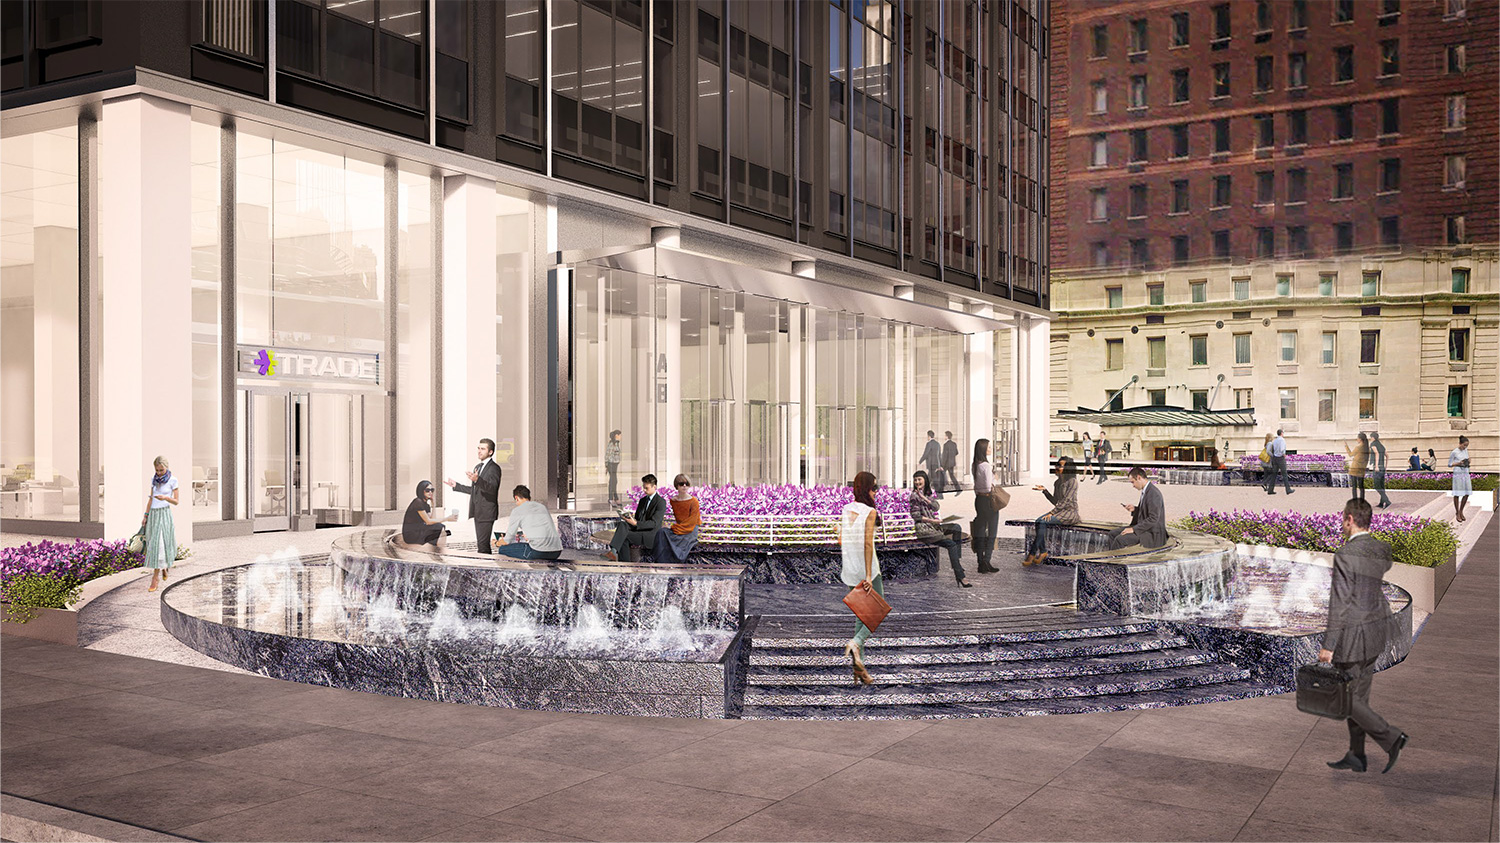 Convene - 605 3rd Ave, New York City, NYConveniently located in Midtown Manhattan, not far from Grand Central Station